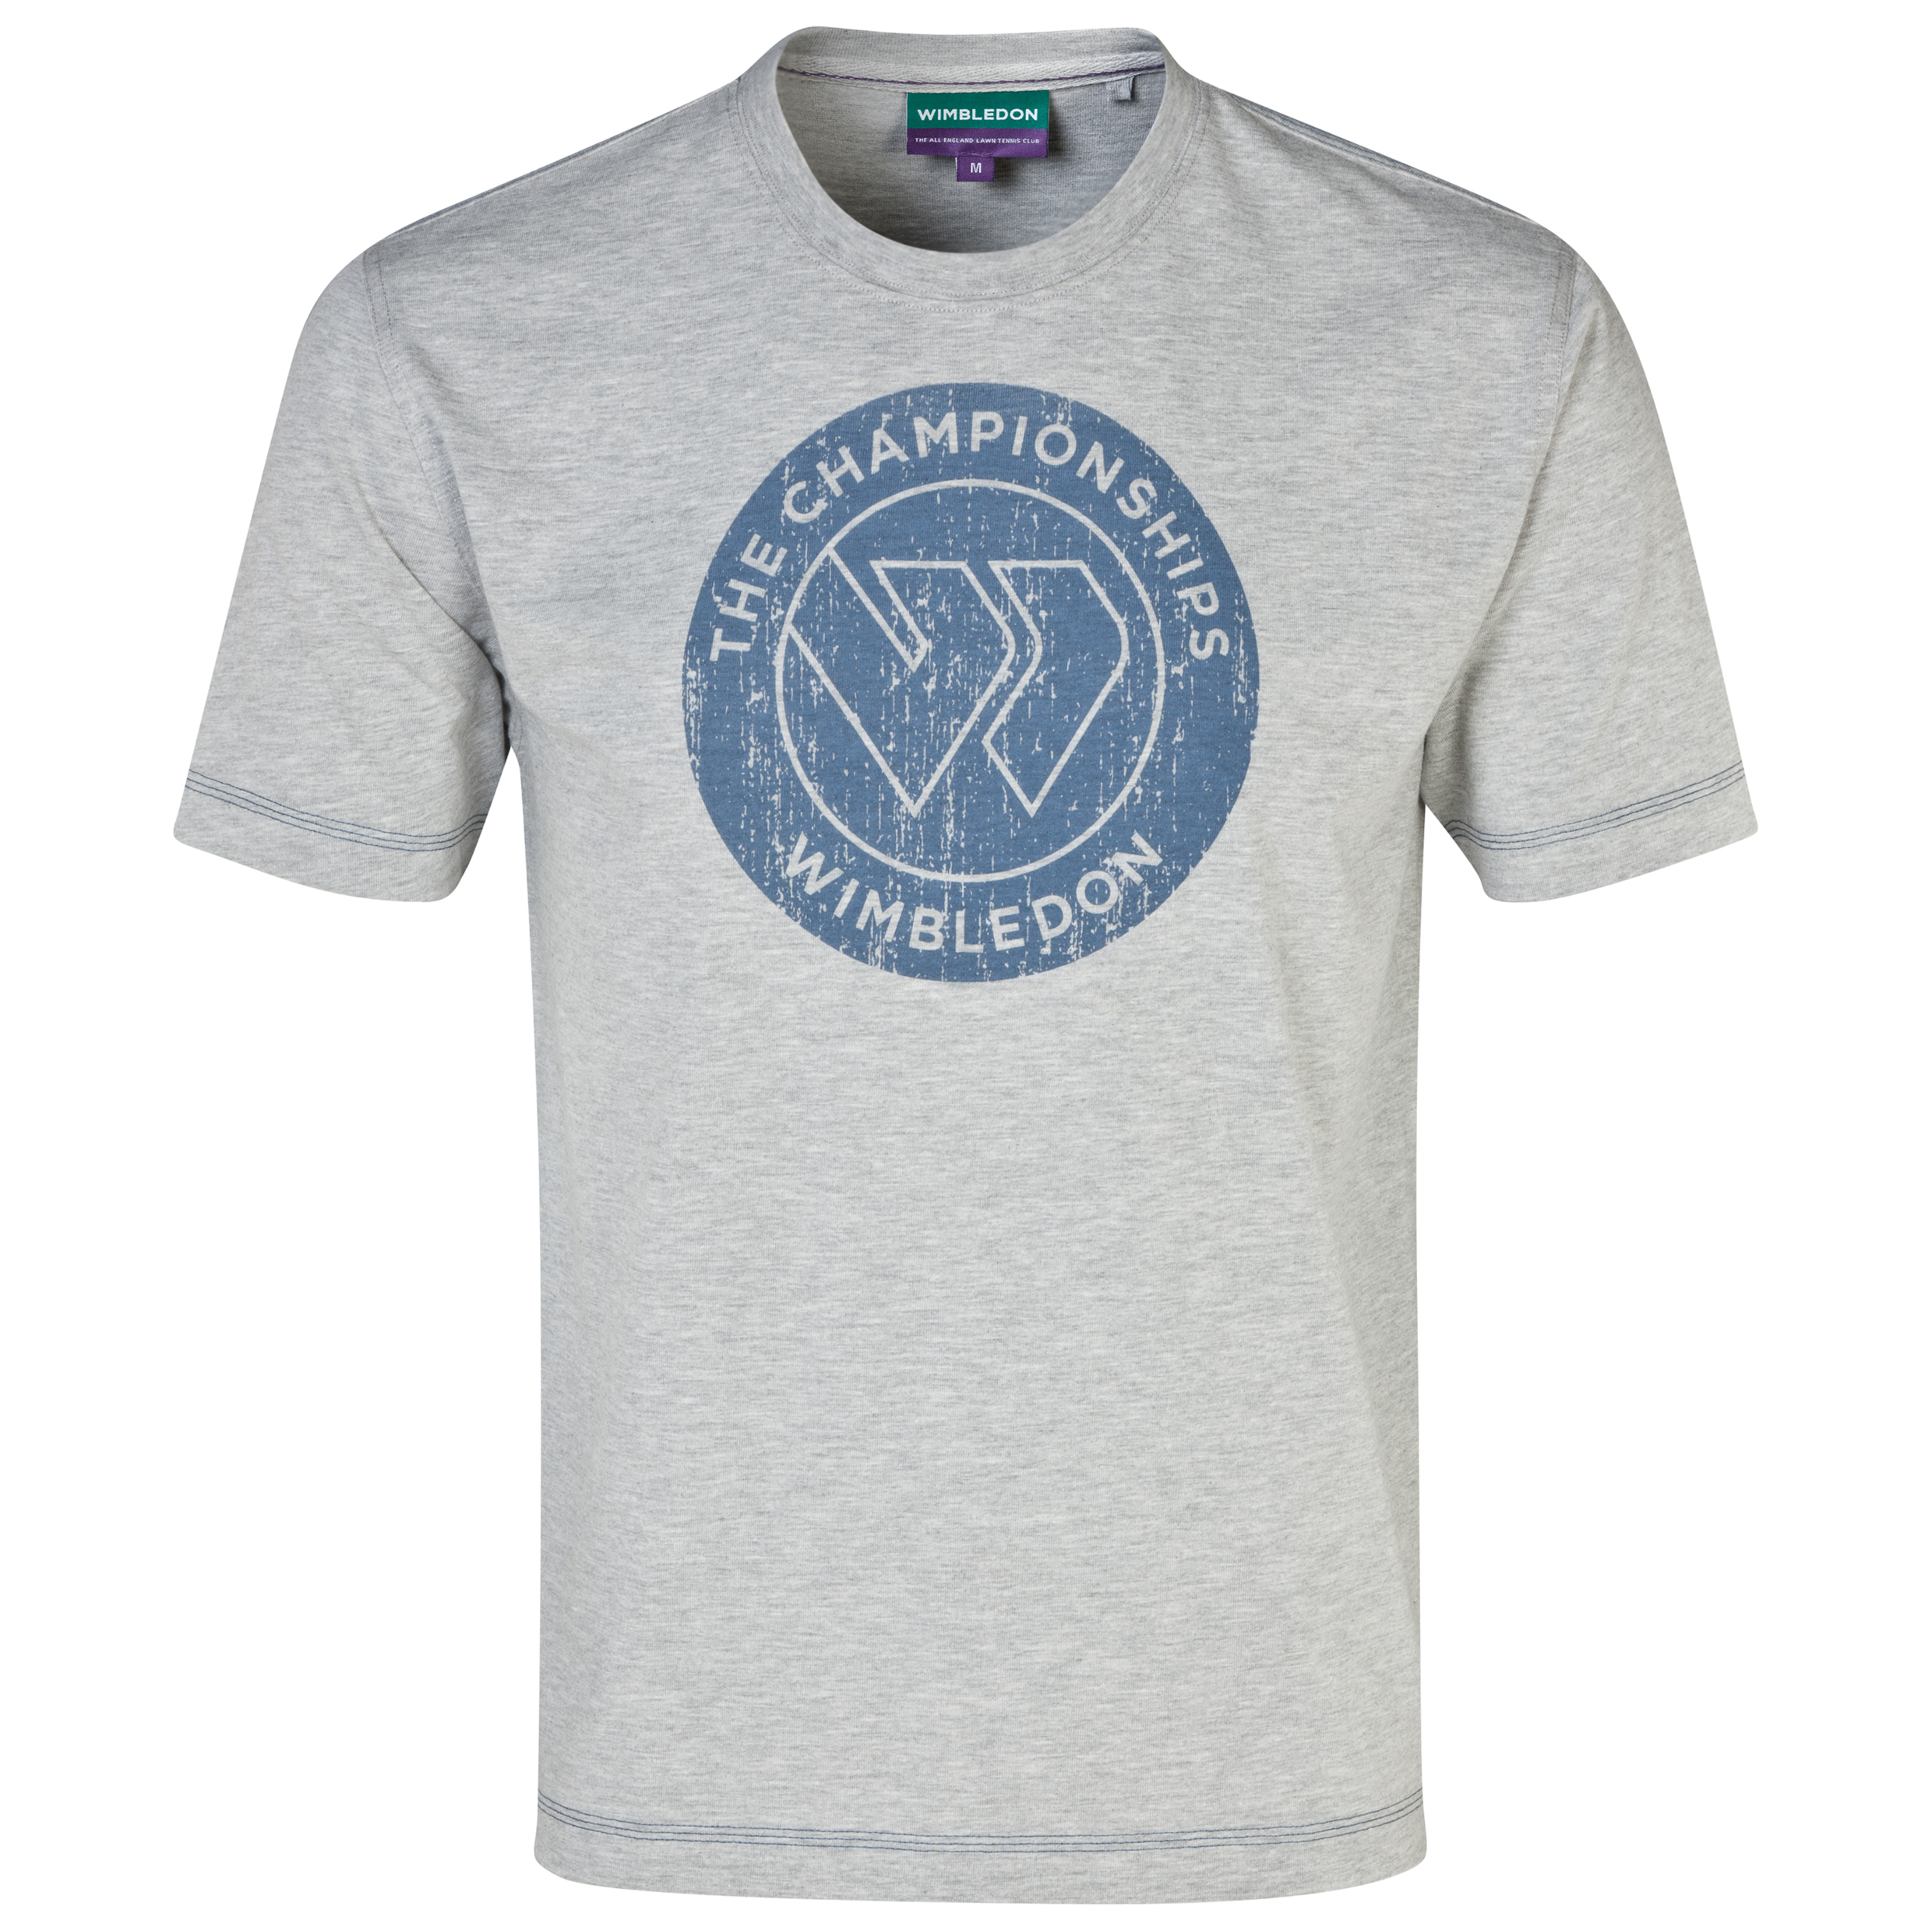 Wimbledon Flying W Print T-Shirt Grey